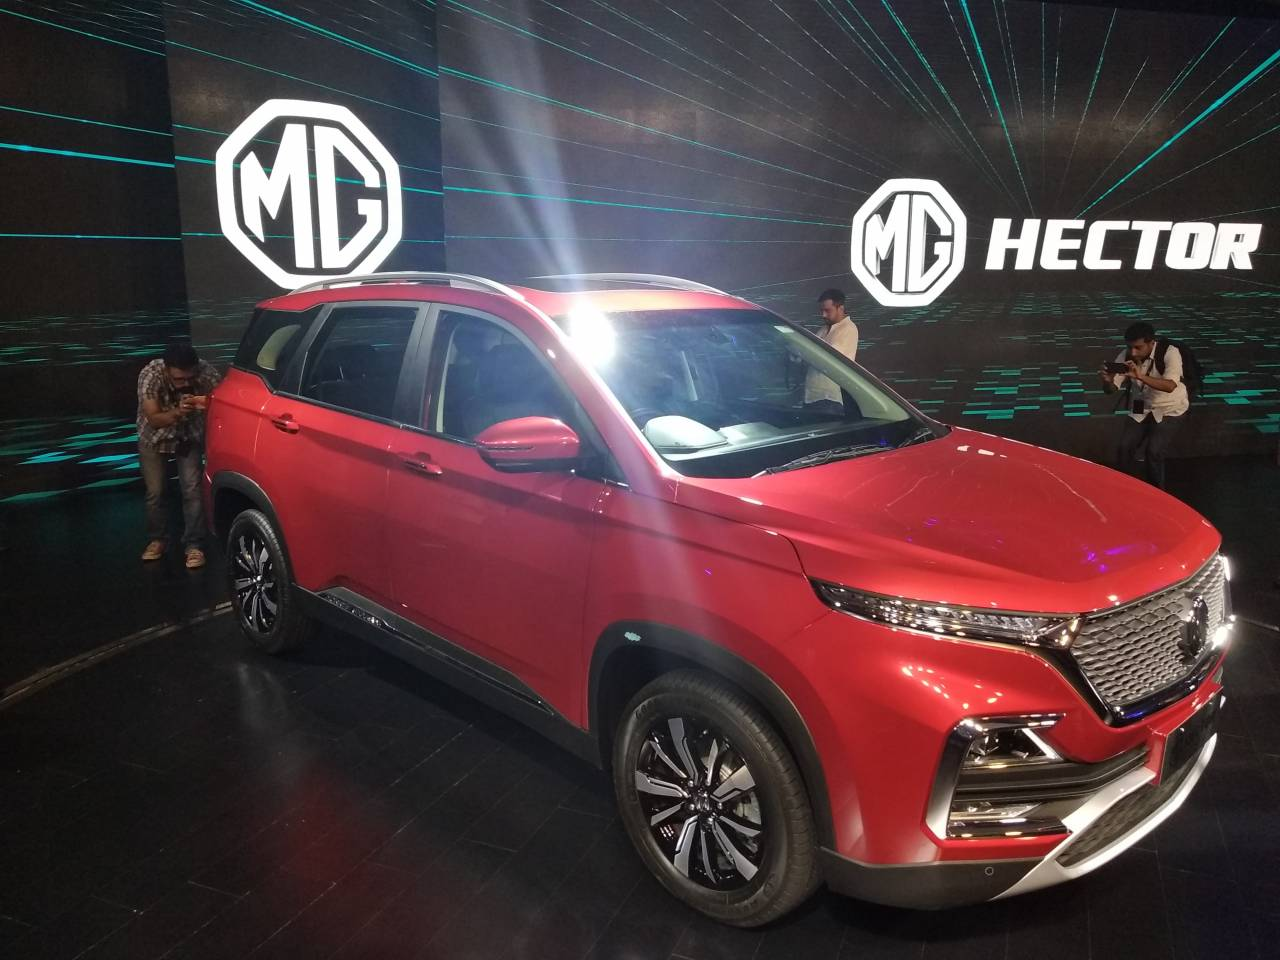 The MG Hector will compete against the Tata Harrier, Mahindra XUV500, Jeep Compass, Hyundai Creta, Nissan Kicks, Renault Captur and the upcoming Kia SP Concept. Pic courtesy: Moneycontrol